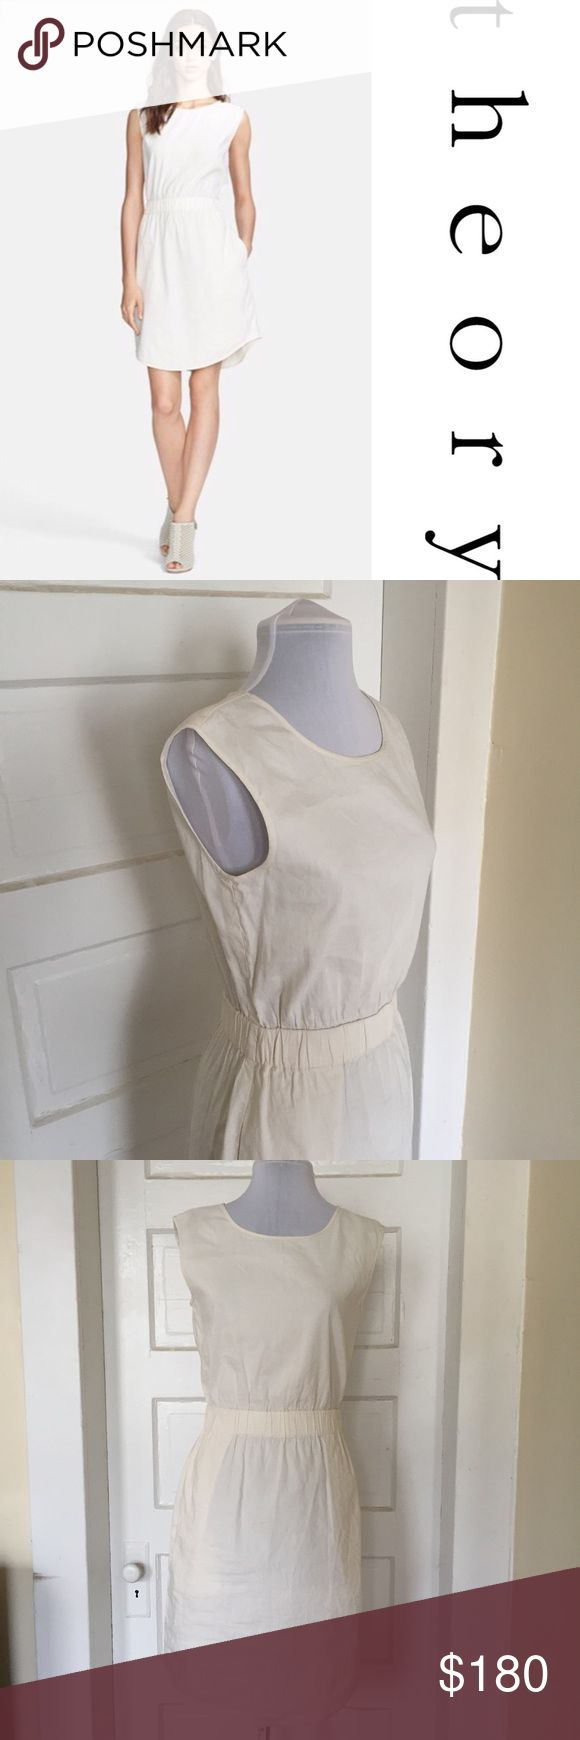 🆕{Theory} Lydan Off White Blouson Dress w Pockets NWT dress from the label Theory. Perfect for everyday, though I can totally picture a casual gal wearing this to her beach/backyard wedding! The linen blend fabric is so luxe! Size small, true to size. Features an elastic waist, mini length, and, of course, pockets! Theory Dresses Mini